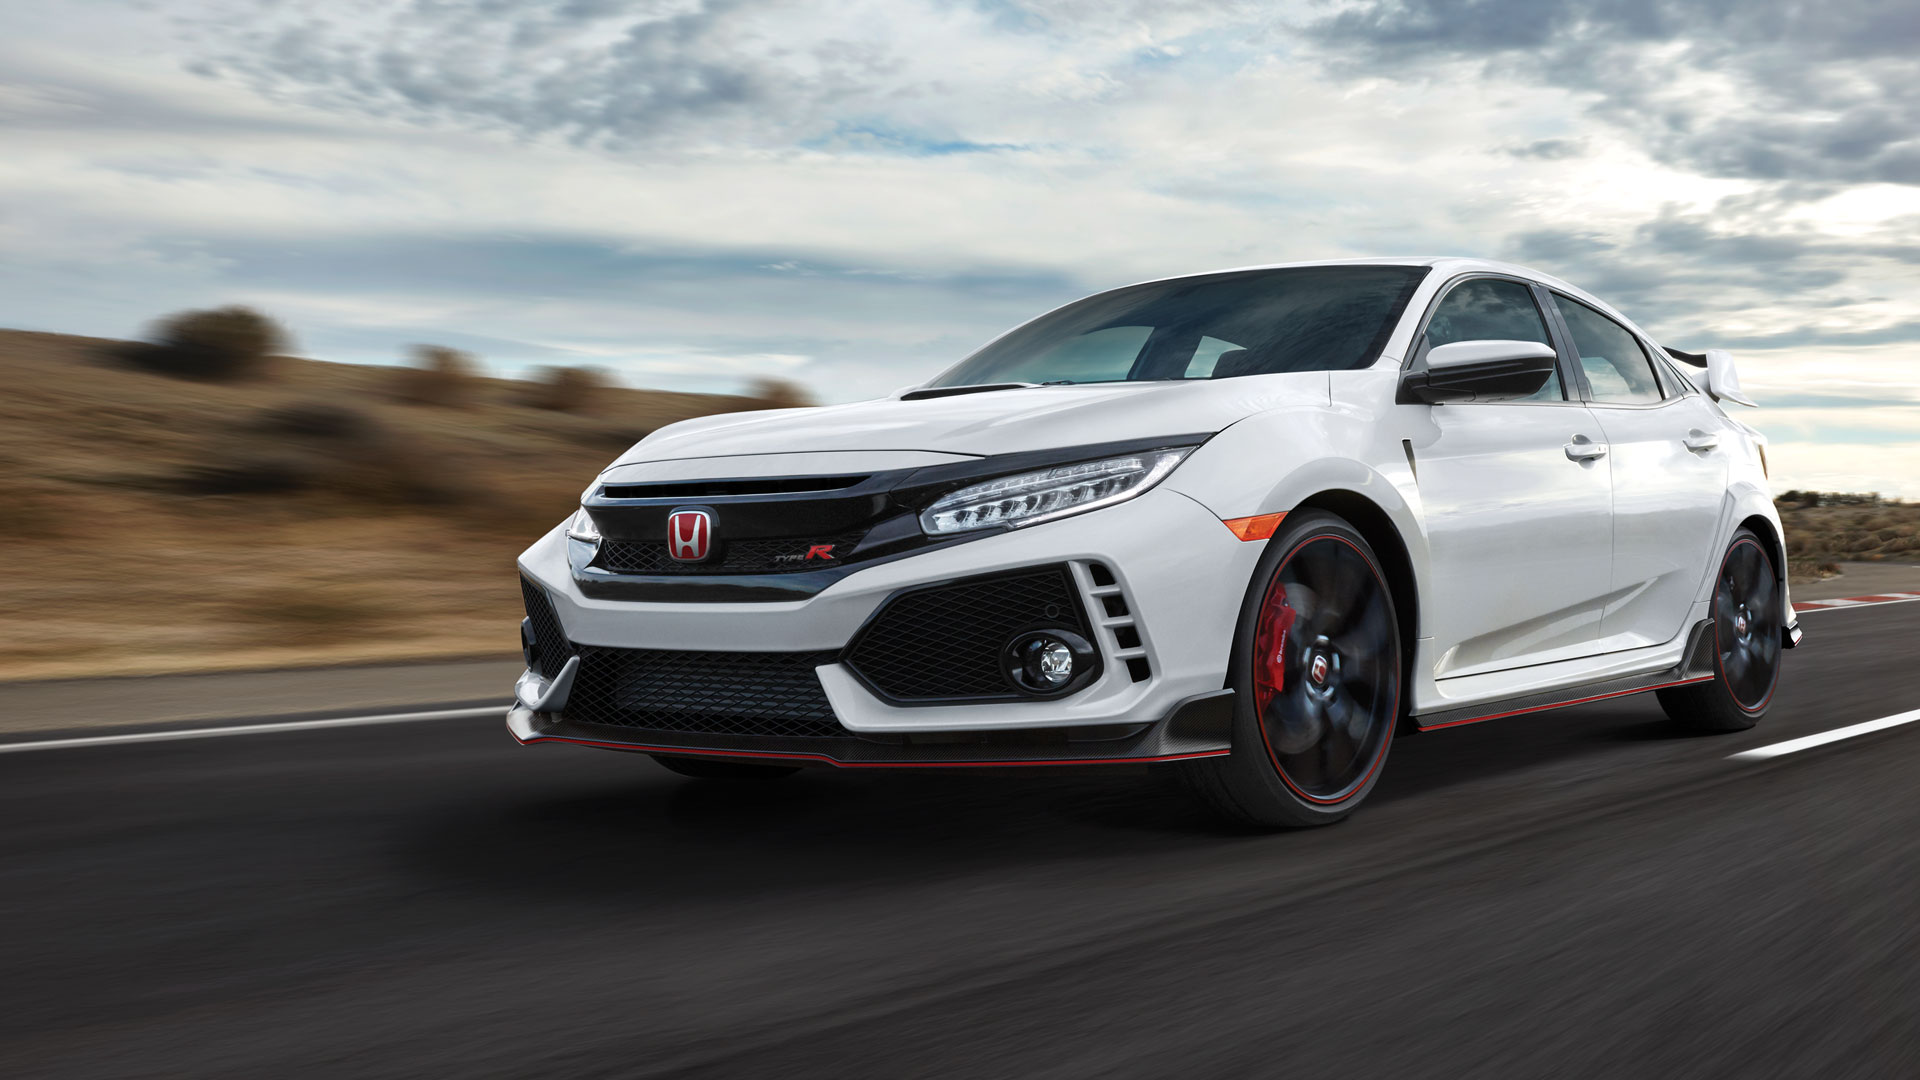 For This Saturday Only You Can Test Drive The All New 2018 Civic Type R Right Here At Checkered Flag Honda 306 Horsepower Is As Rare They